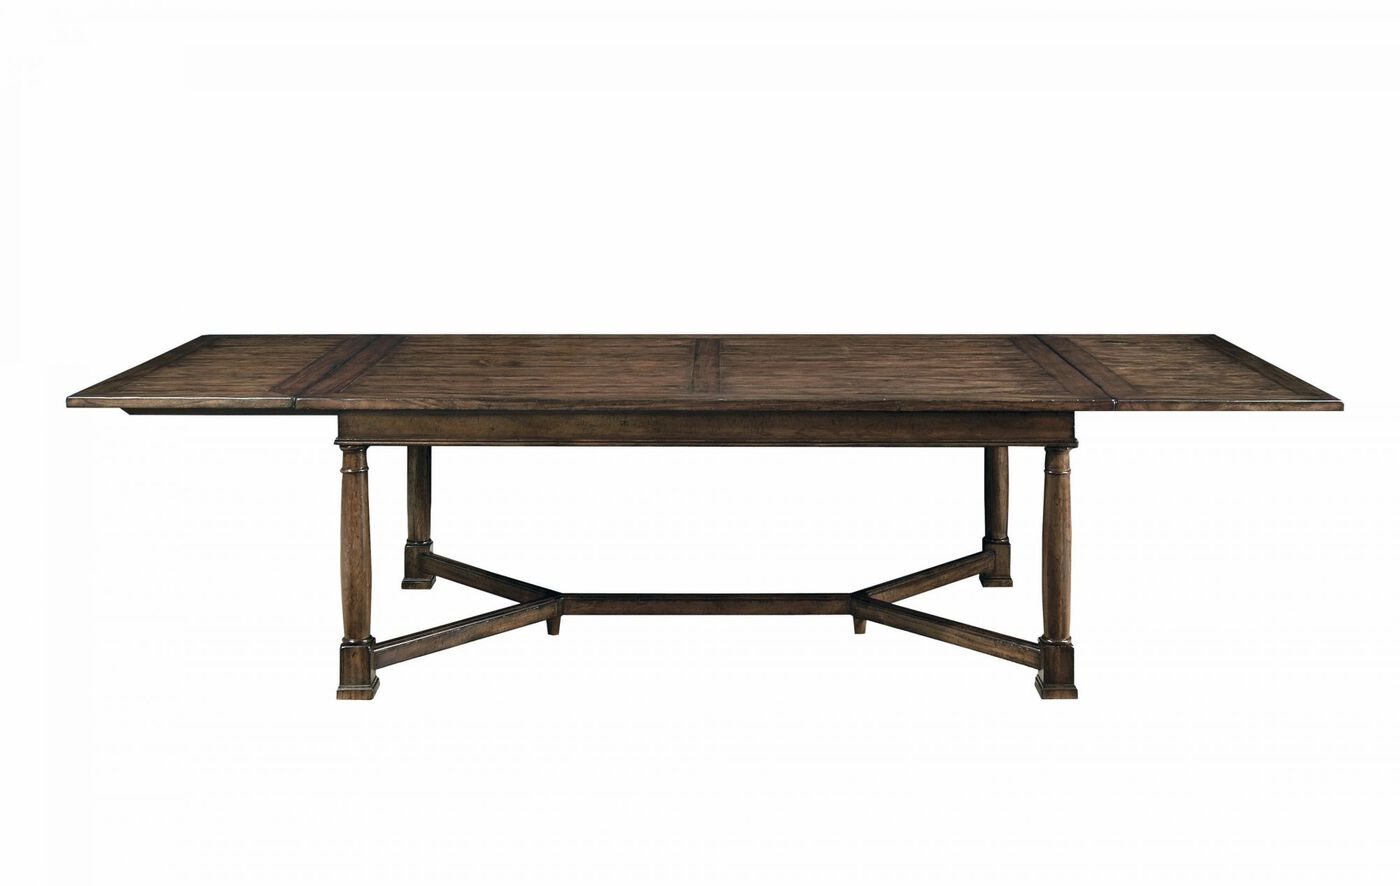 Bernhardt vintage patina trestle dining table mathis for Trestle dining table